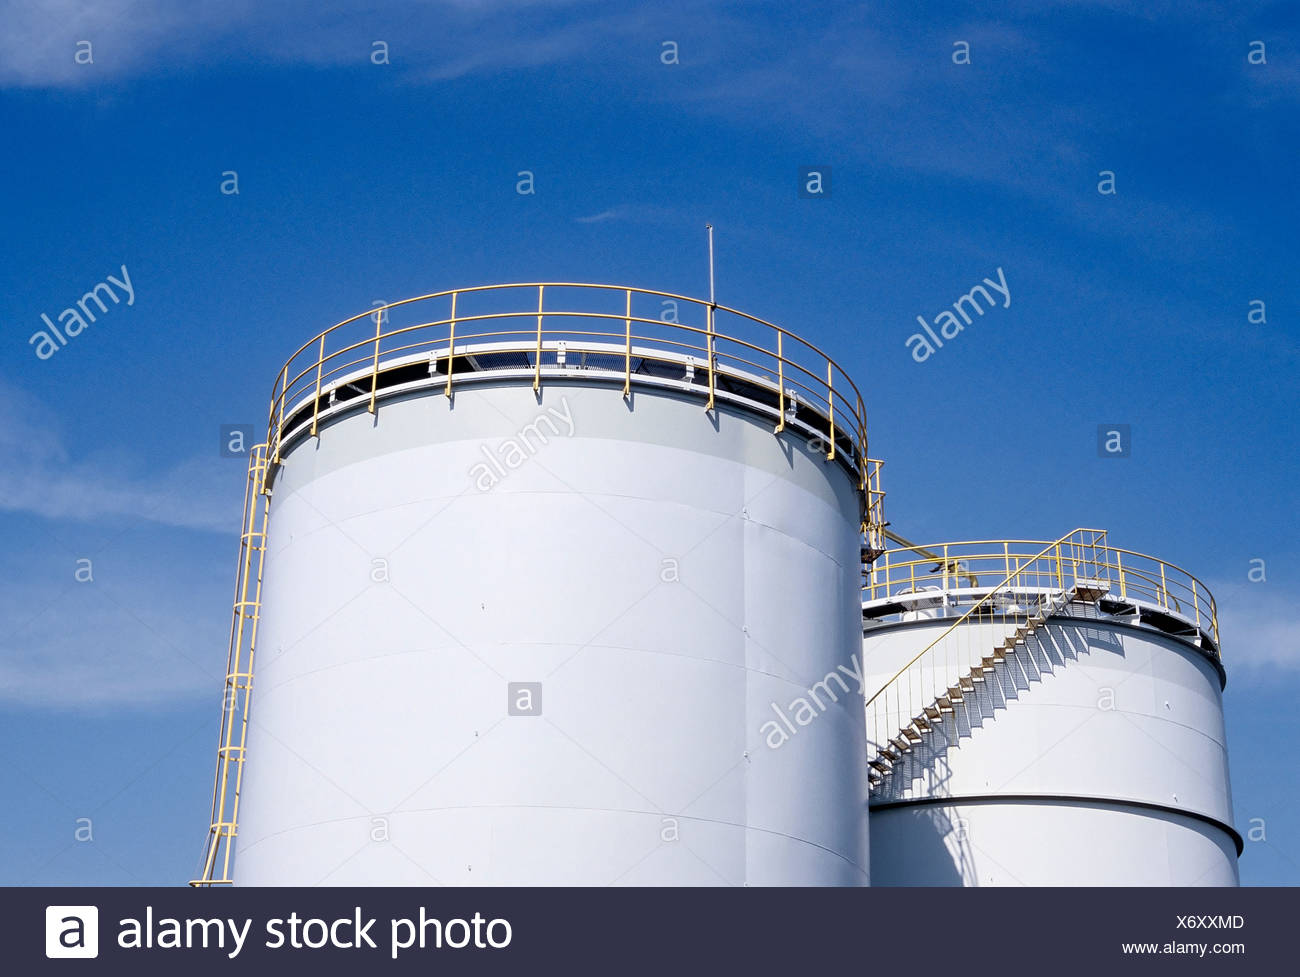 Two tanks containing hydrochloric acid, Chempark Krefeld-Uerdingen industrial park, formerly known as Bayer Industry Services - Stock Image